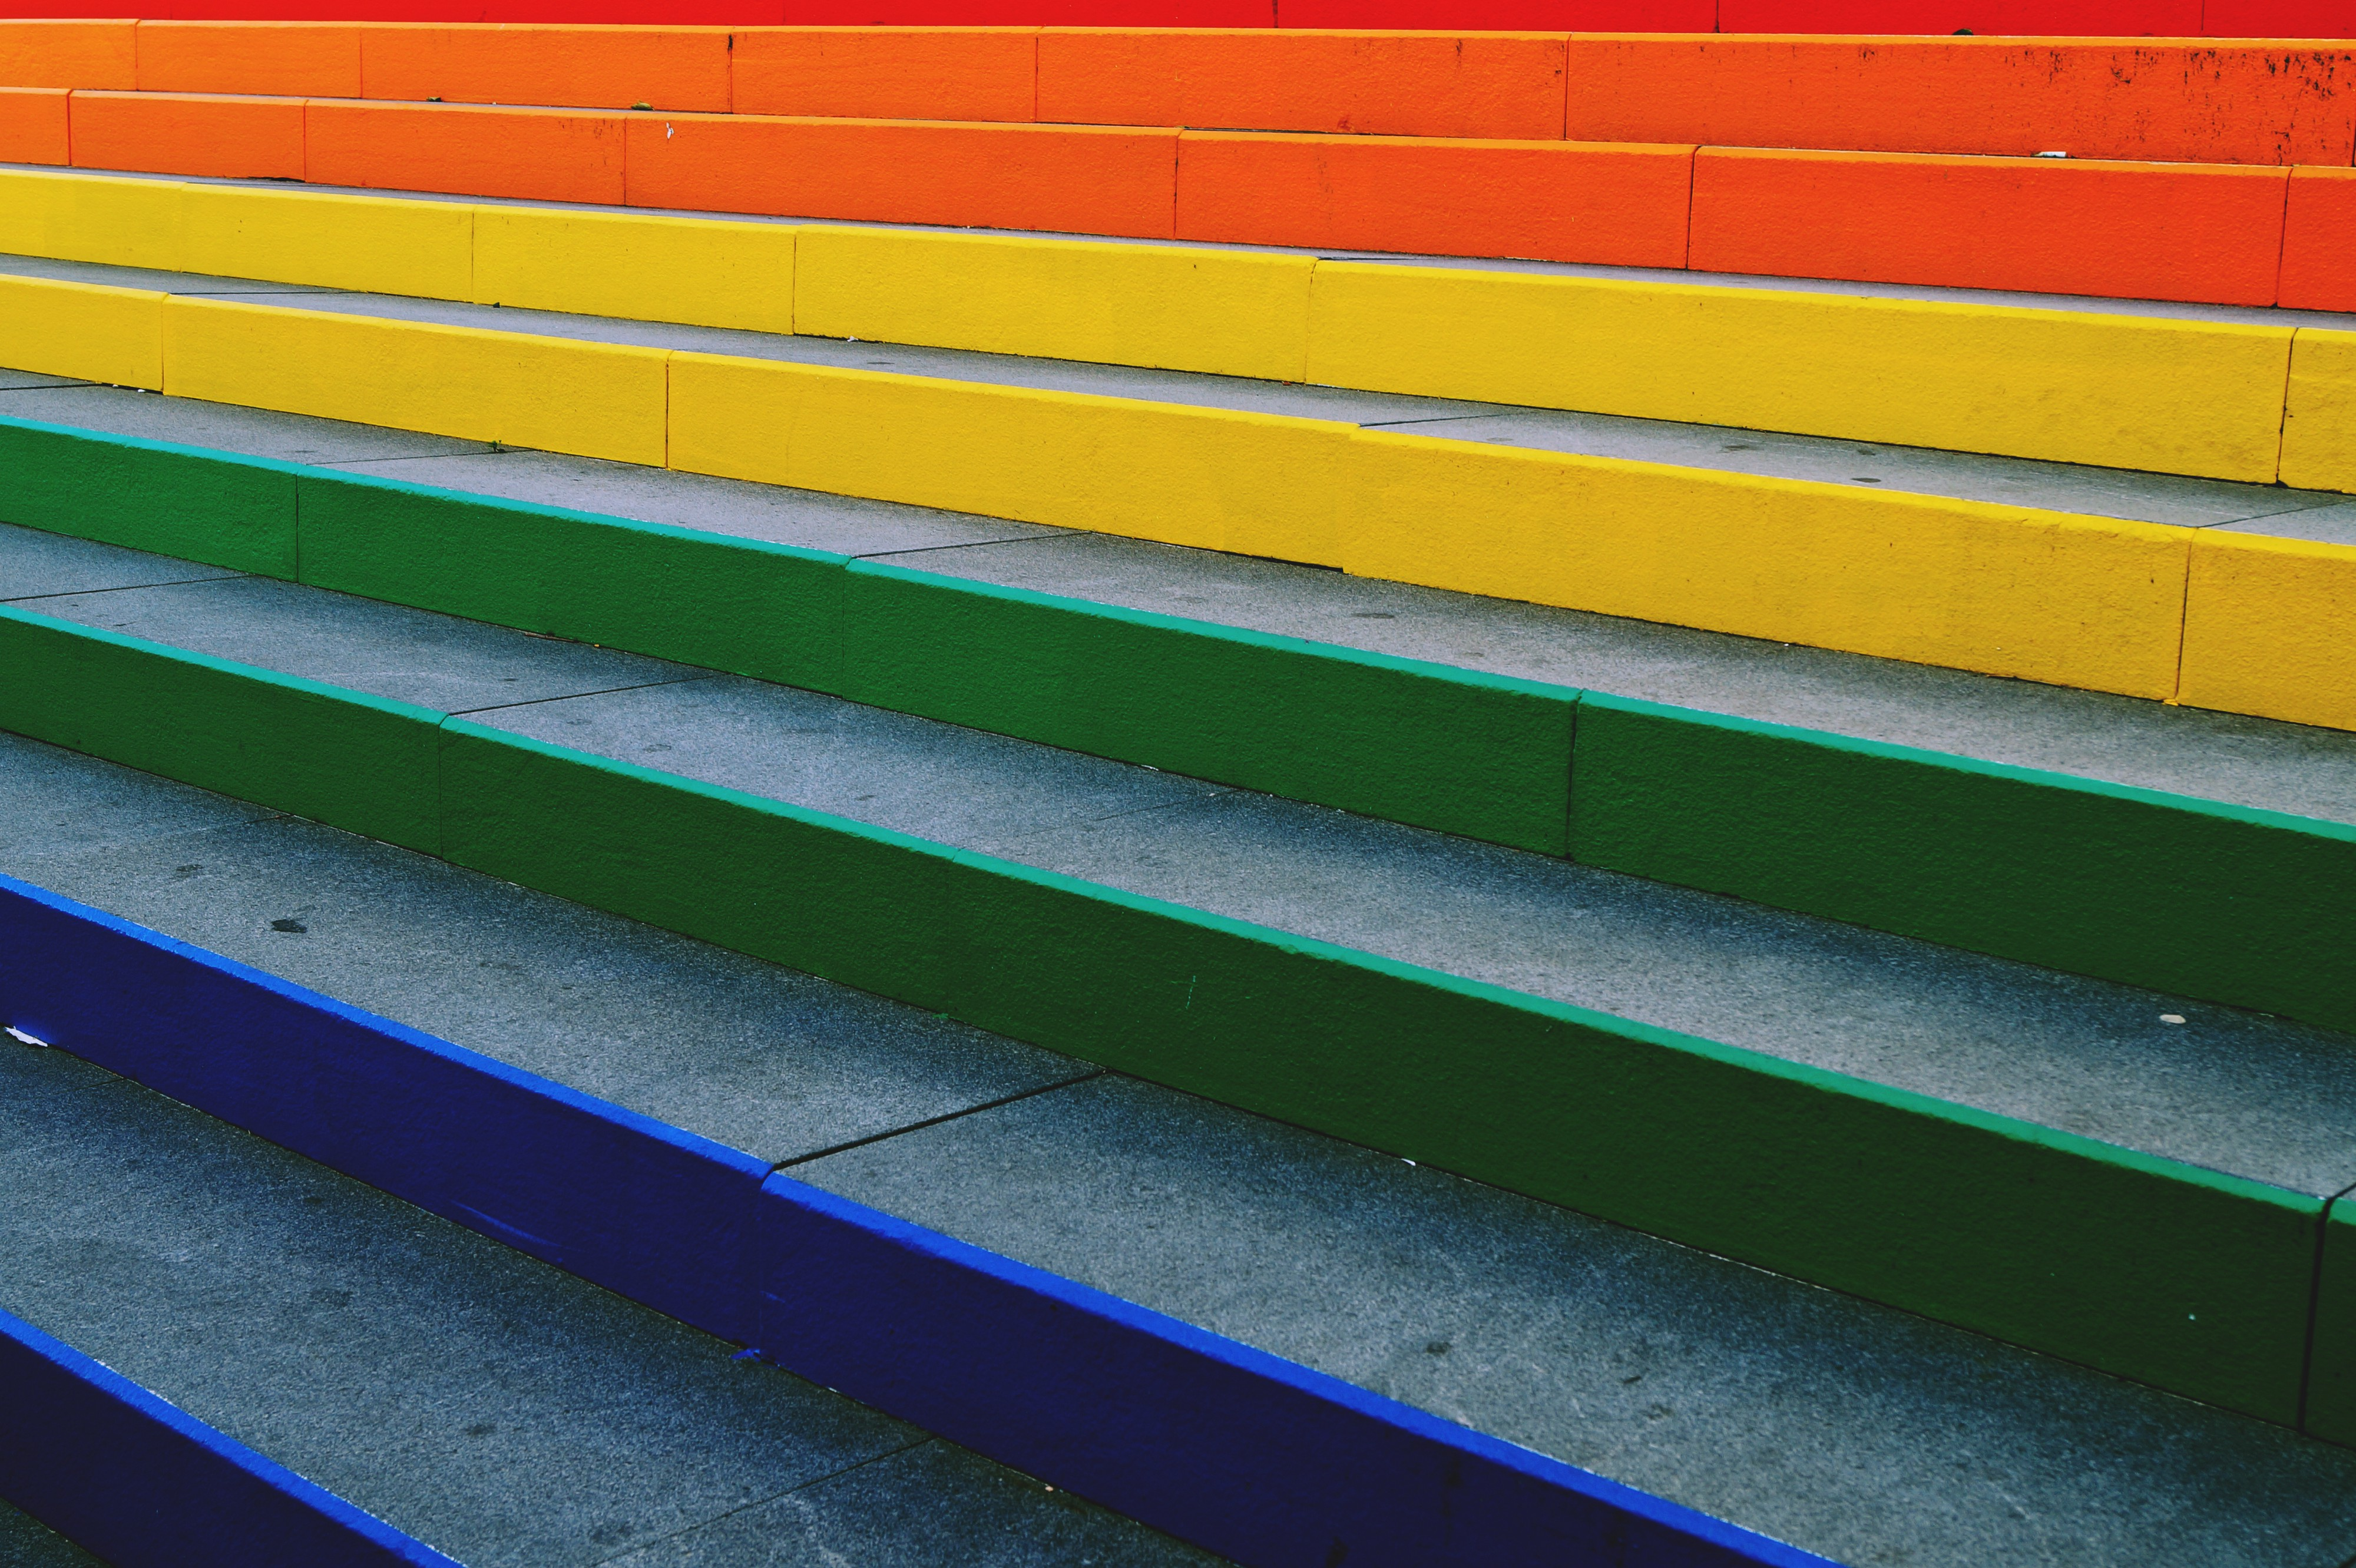 Concrete Stairs with Rainbow Colors Painted on them